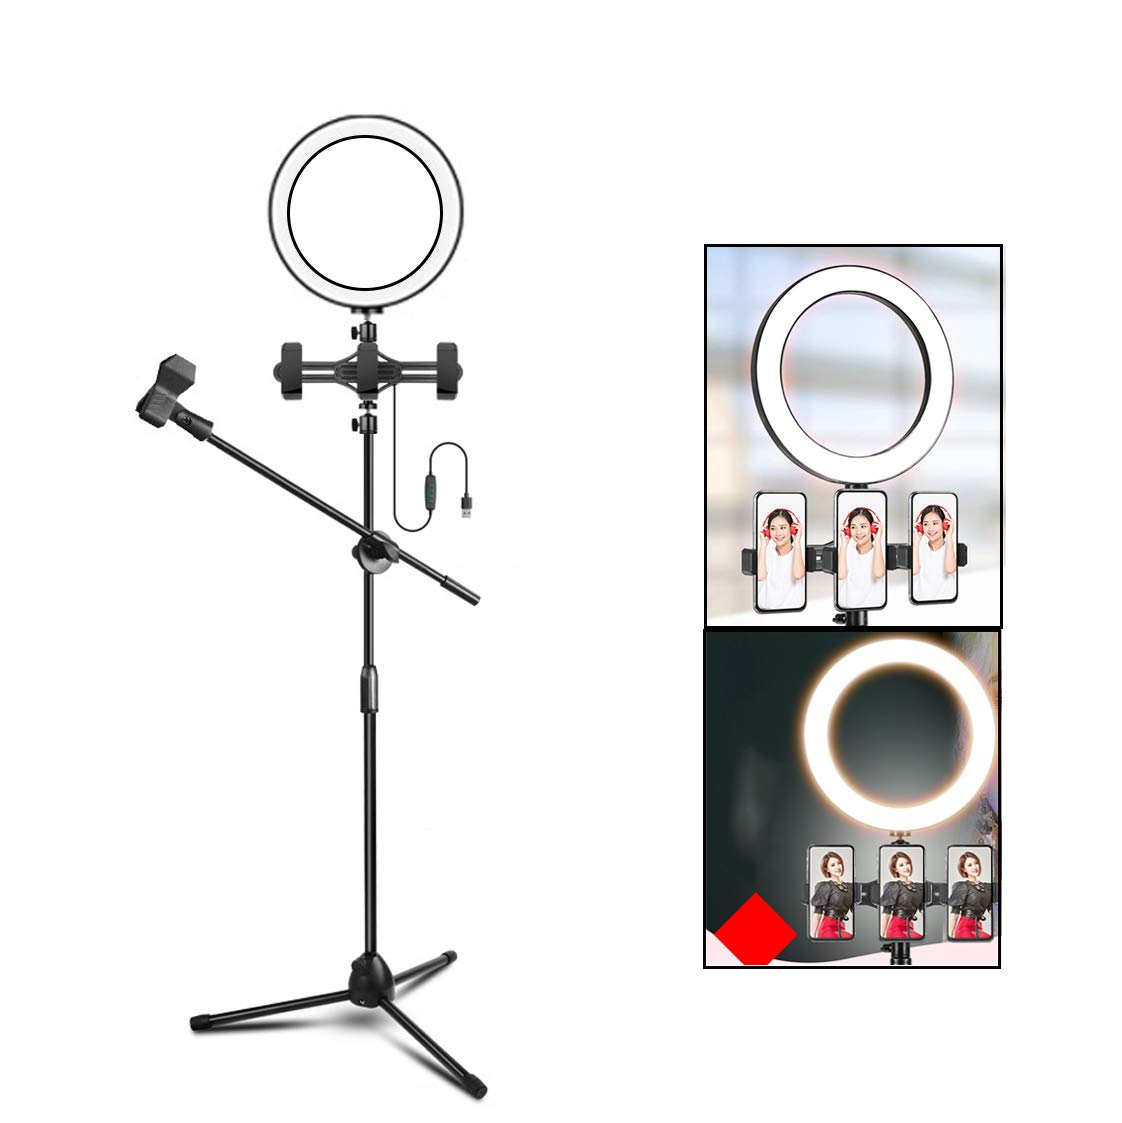 LIJUEZL LED Selfie Ring Light with 3 Cell Phone Holder Stand & Microphone Holder for Video Chat Live Stream,10in/26cm